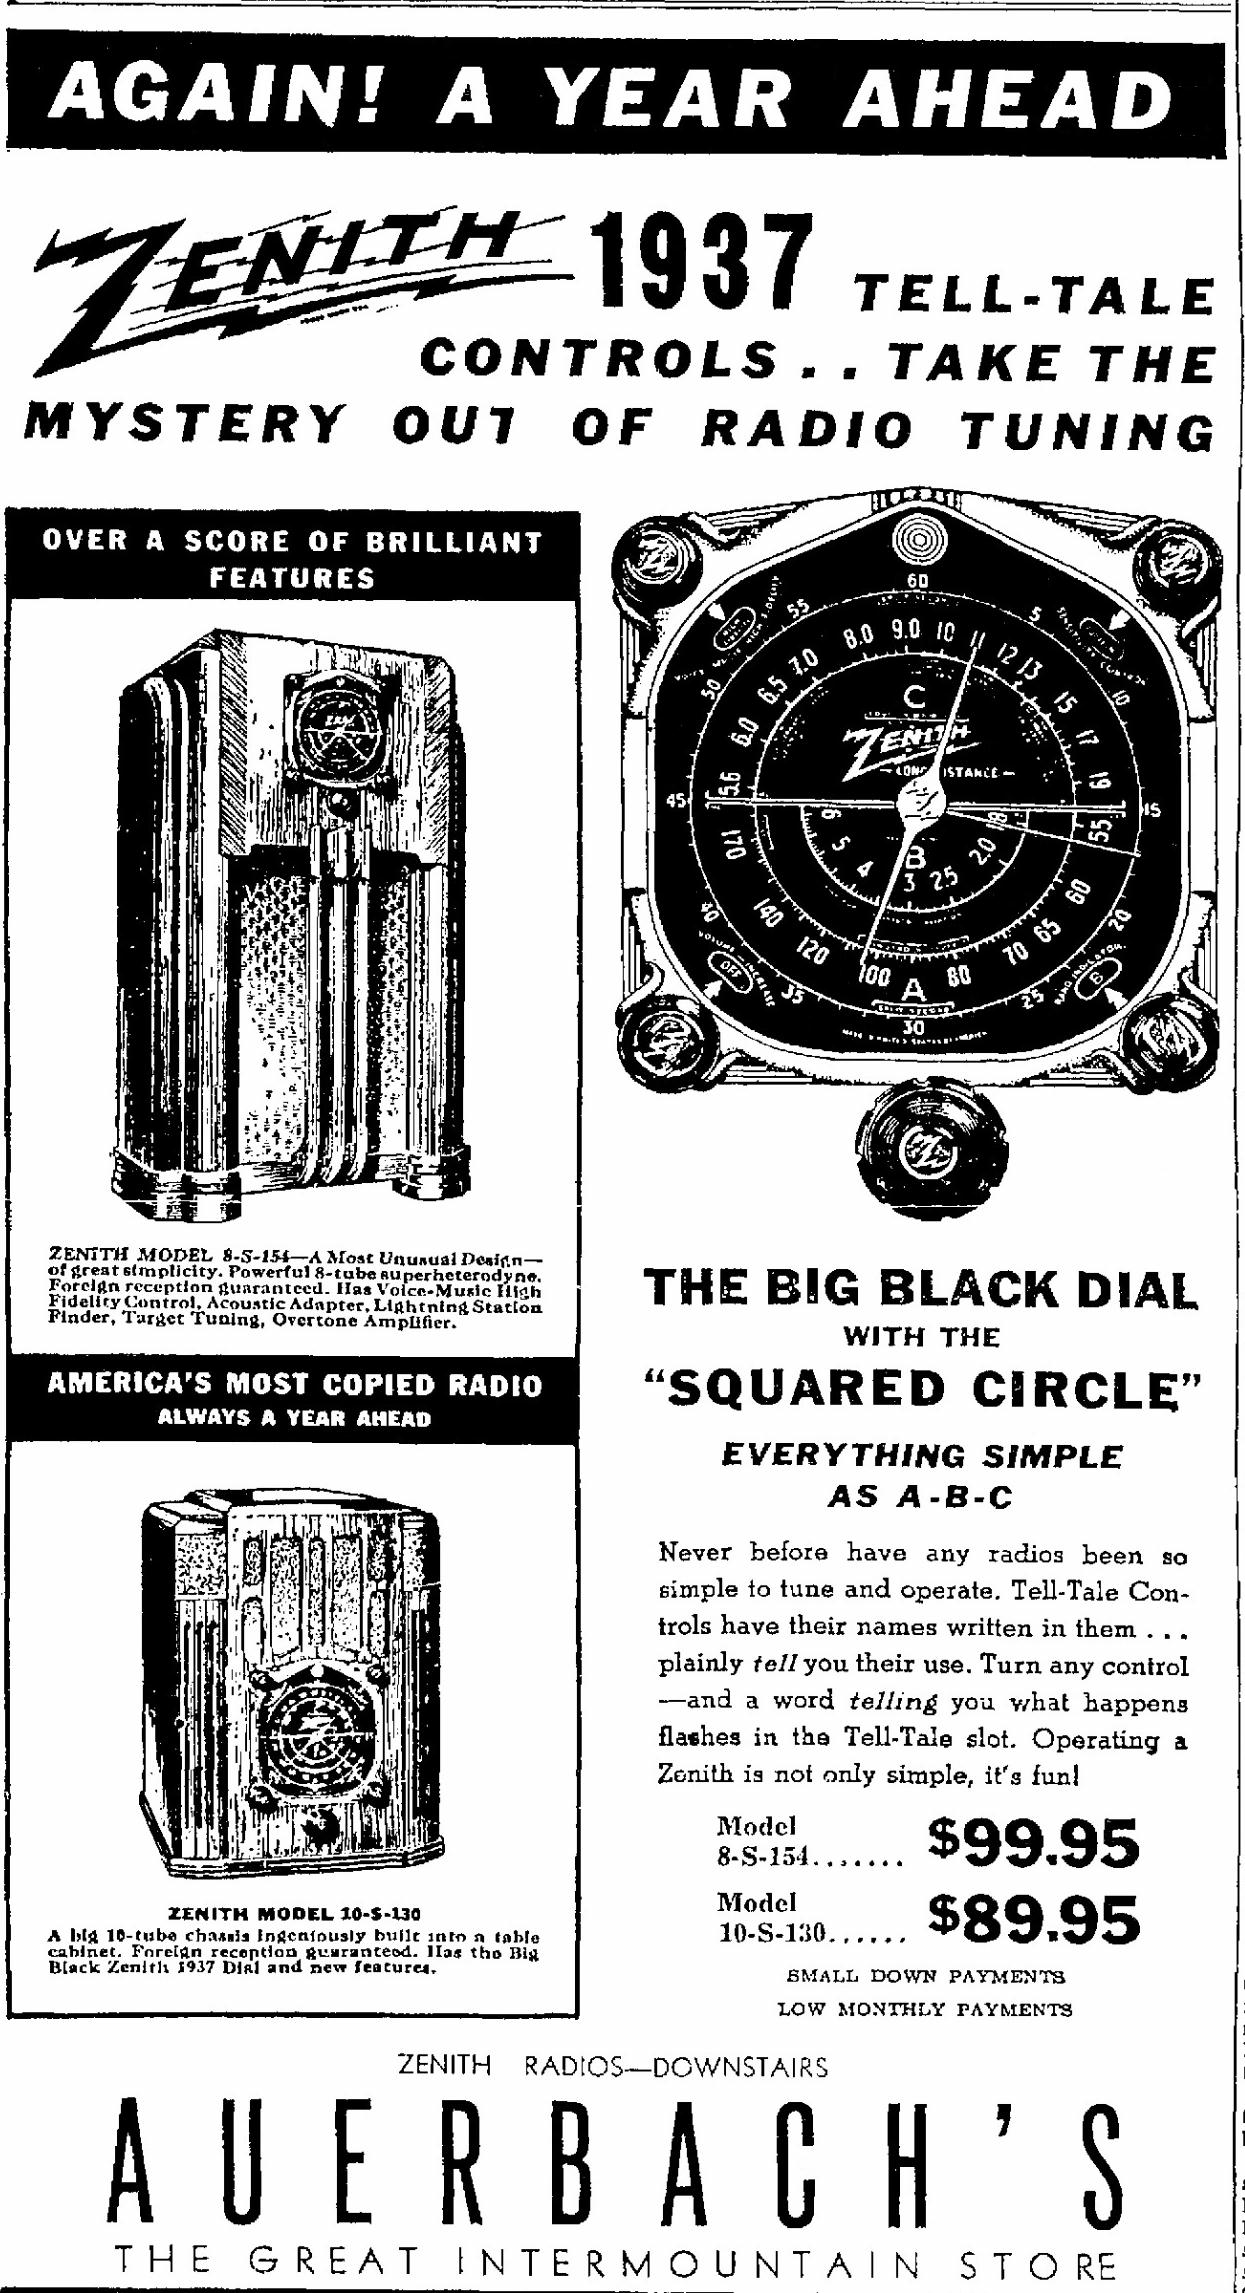 Zenith Model 10s130 Blackdial Tombstone Radio 1937. Oct 1936 Utah. Wiring. Zenith Tube Radio Schematics 1938 At Scoala.co